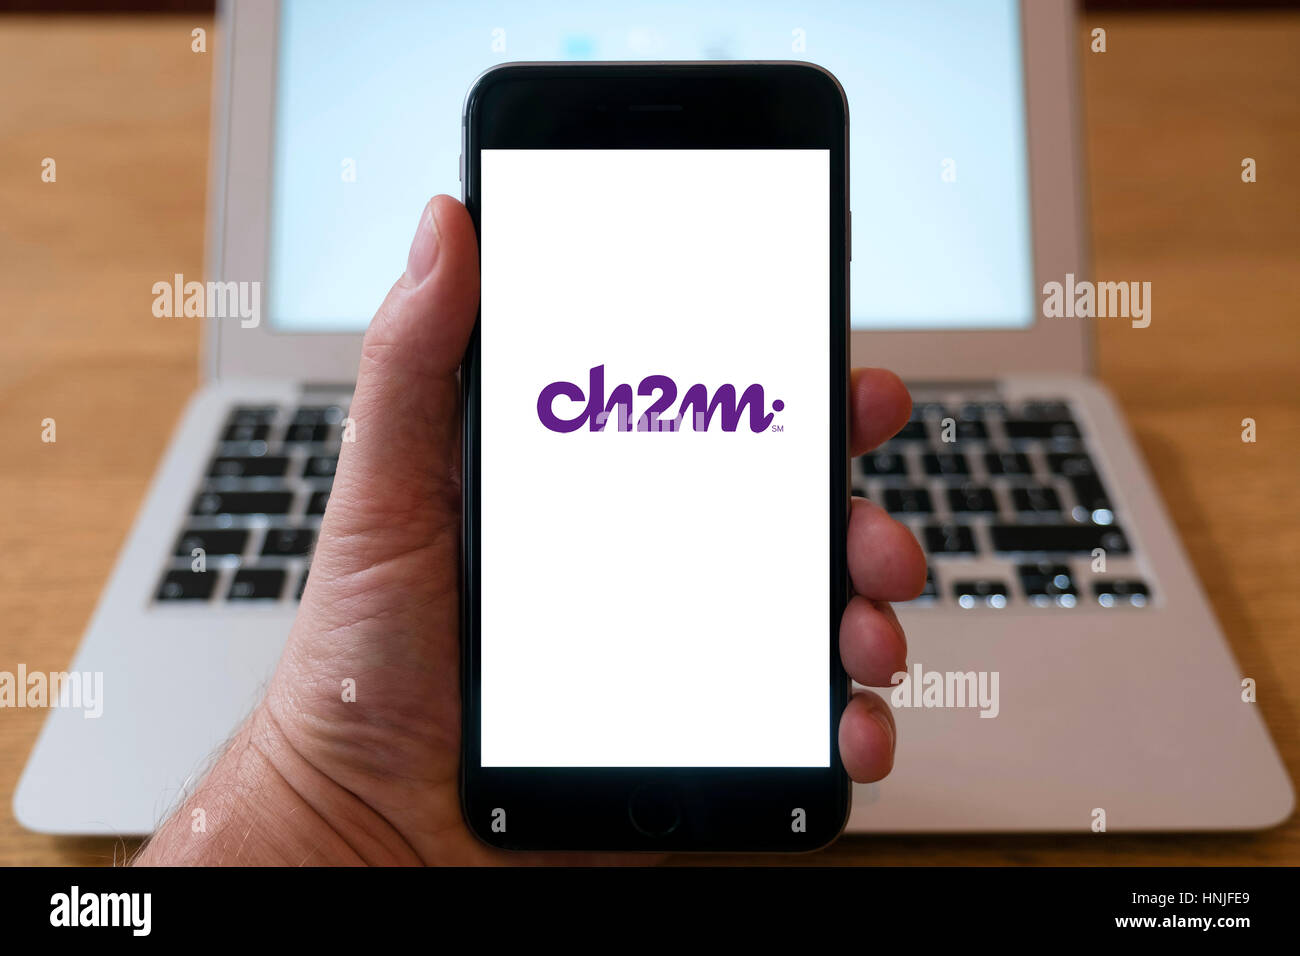 Logo of Ch2m engineering group on smart phone screen. - Stock Image